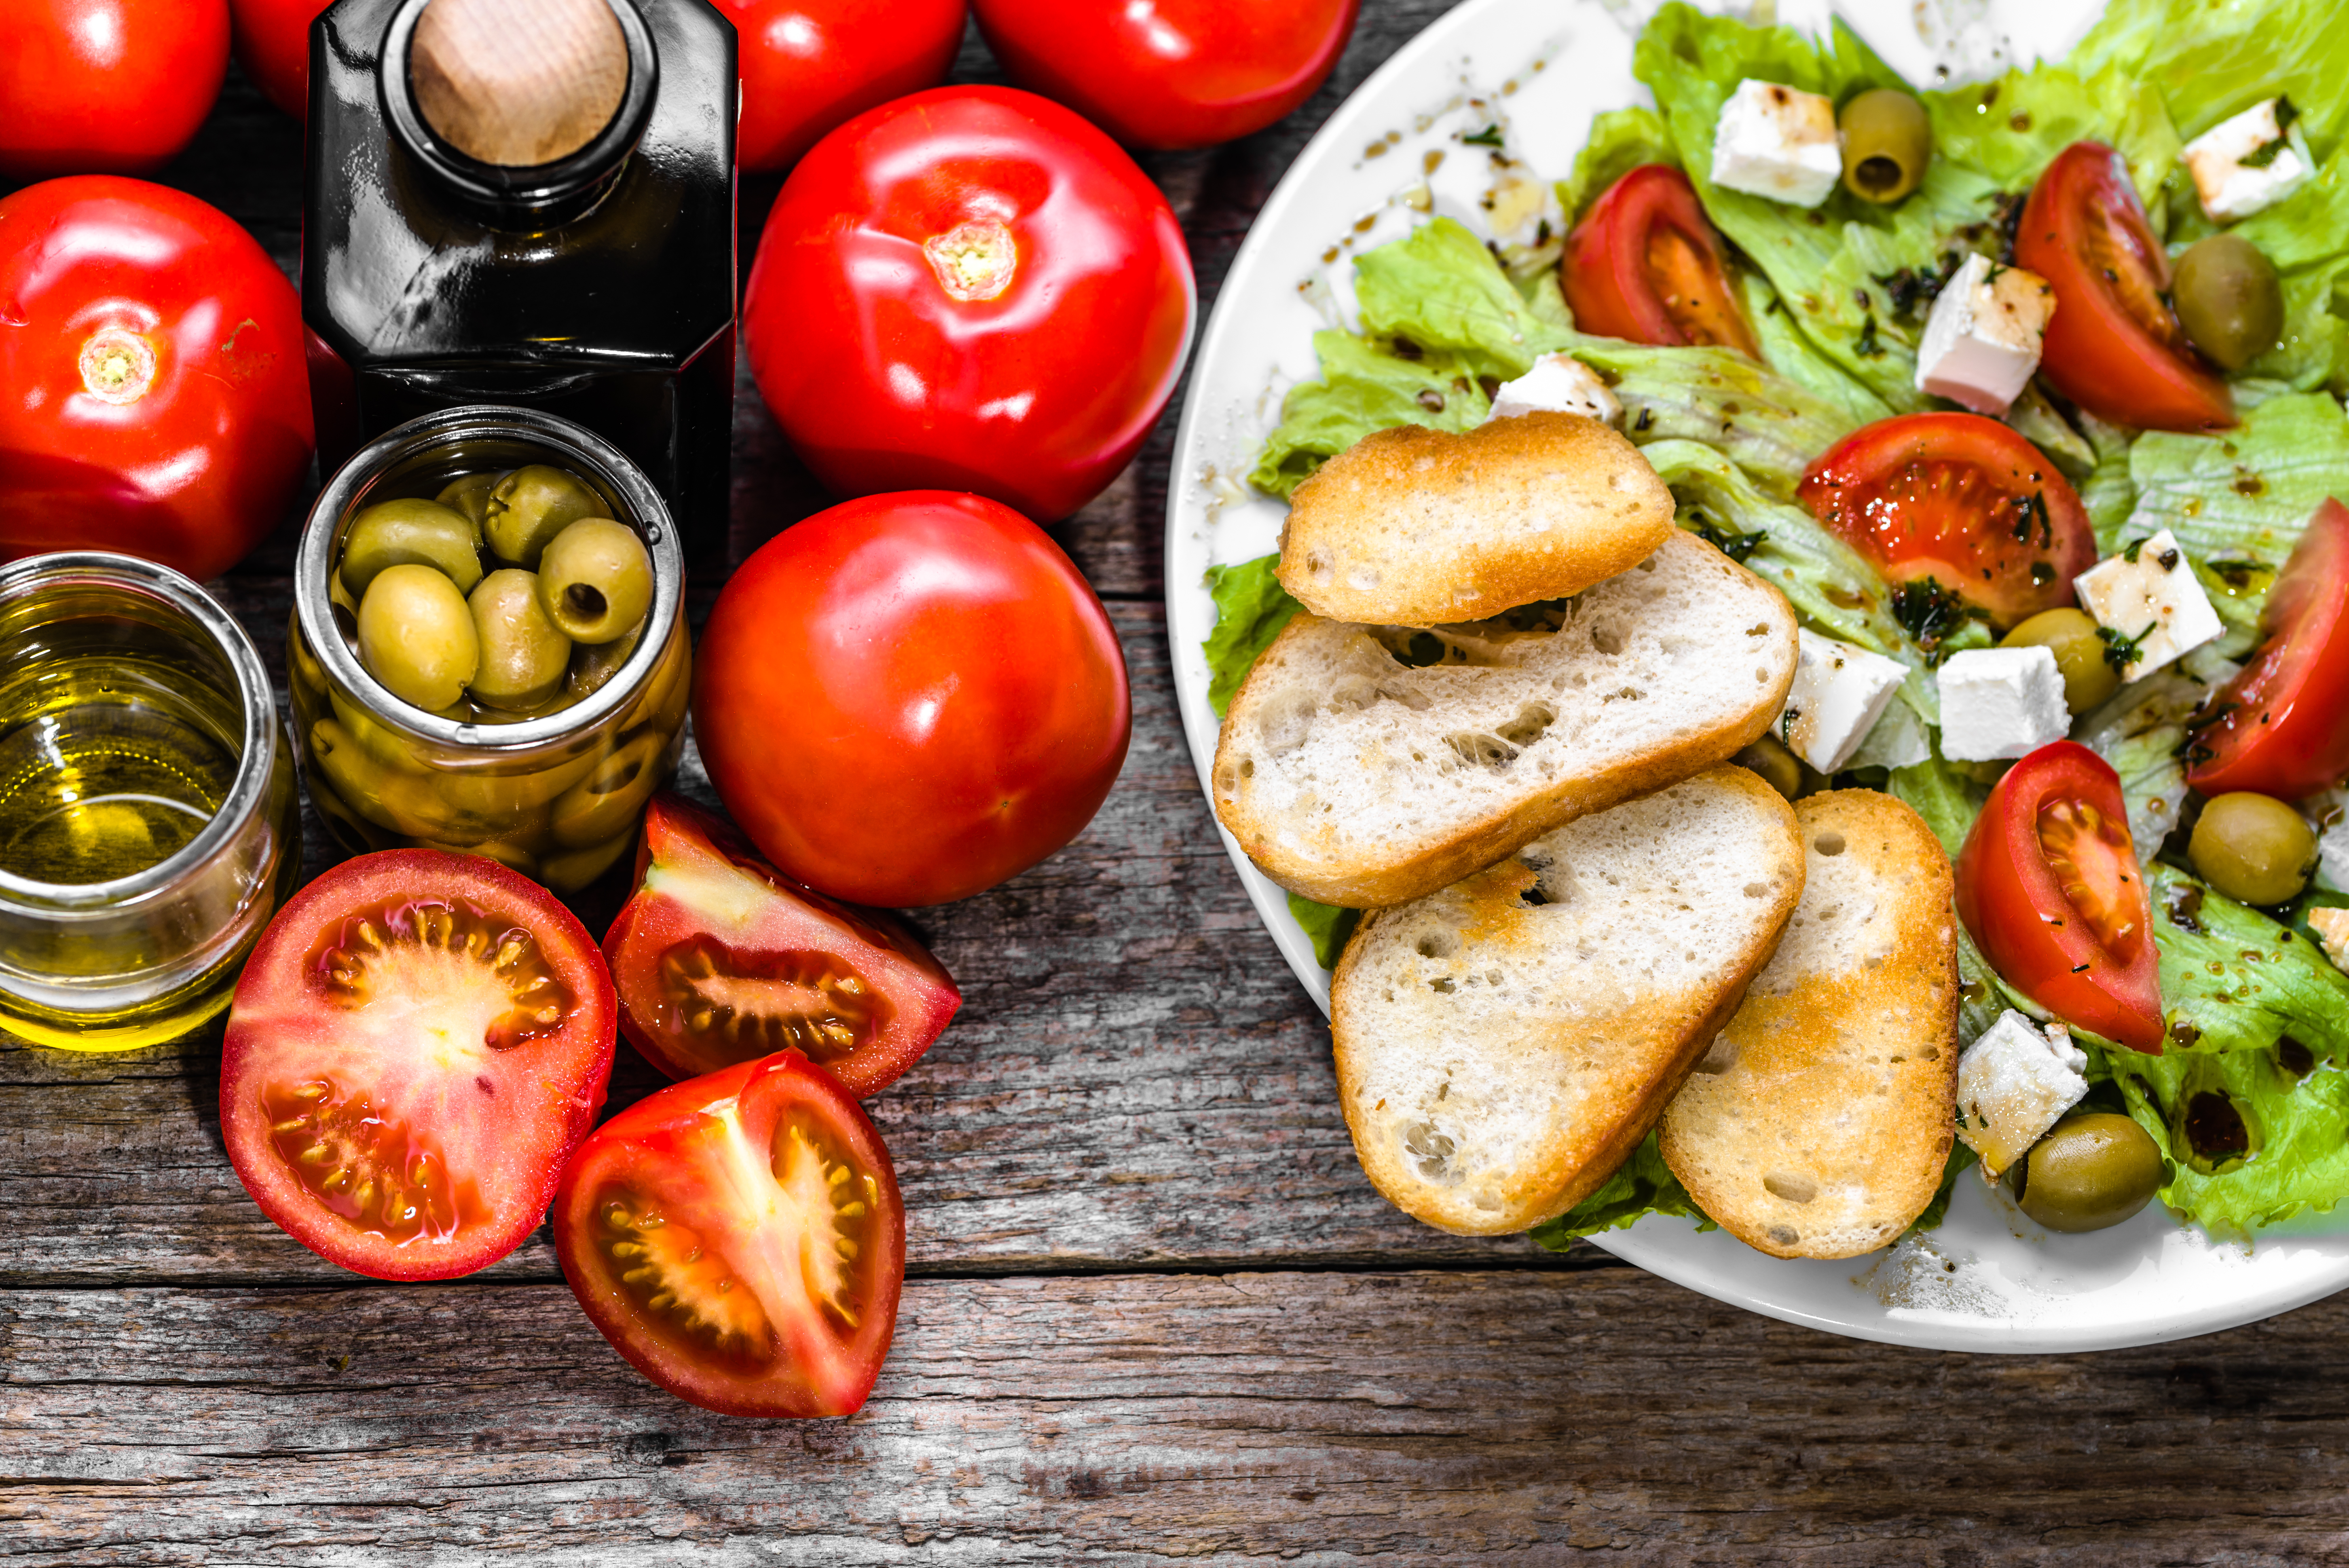 Mediterranean diet and early symptoms